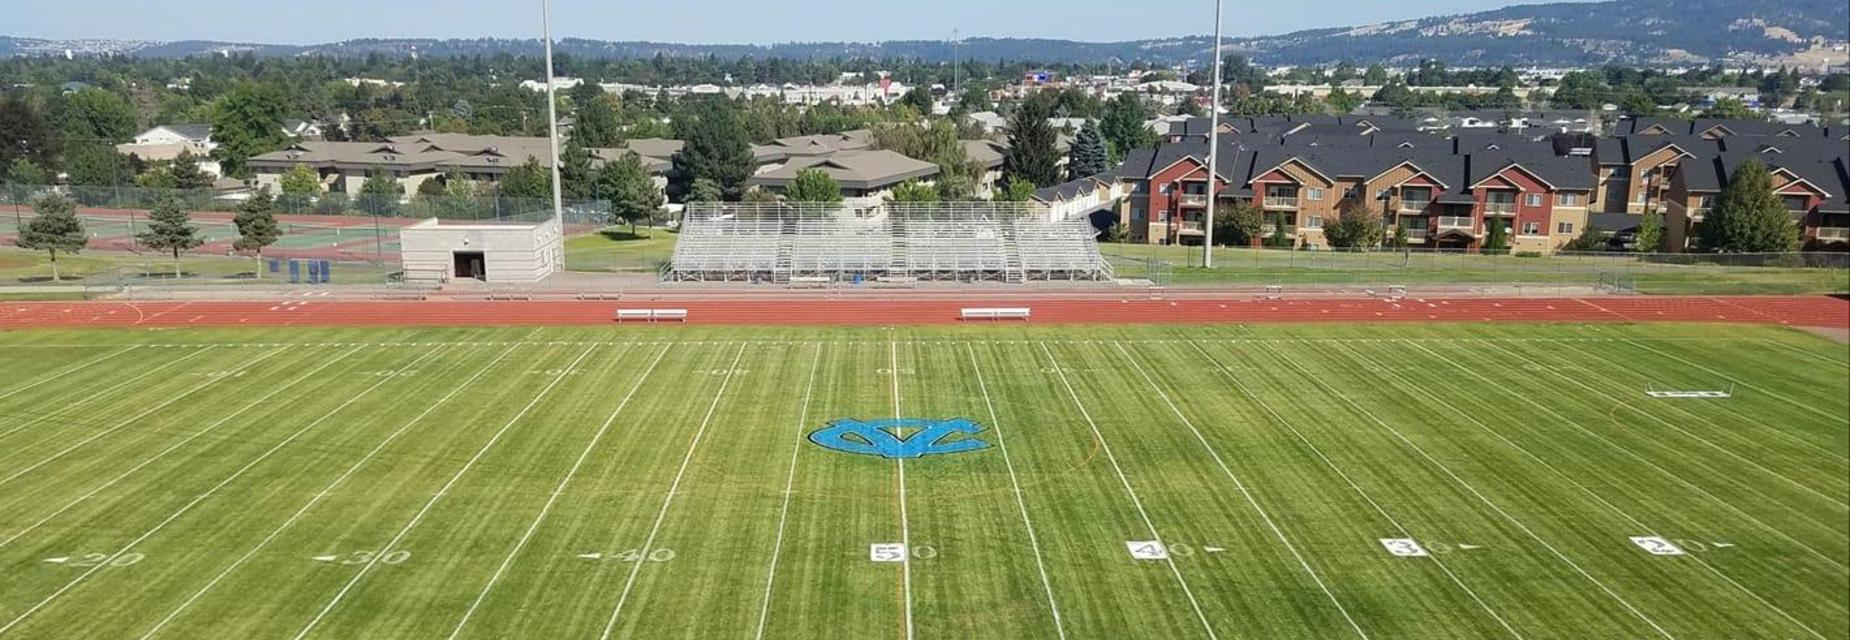 CVHS Field ready for the 2018-19 Season